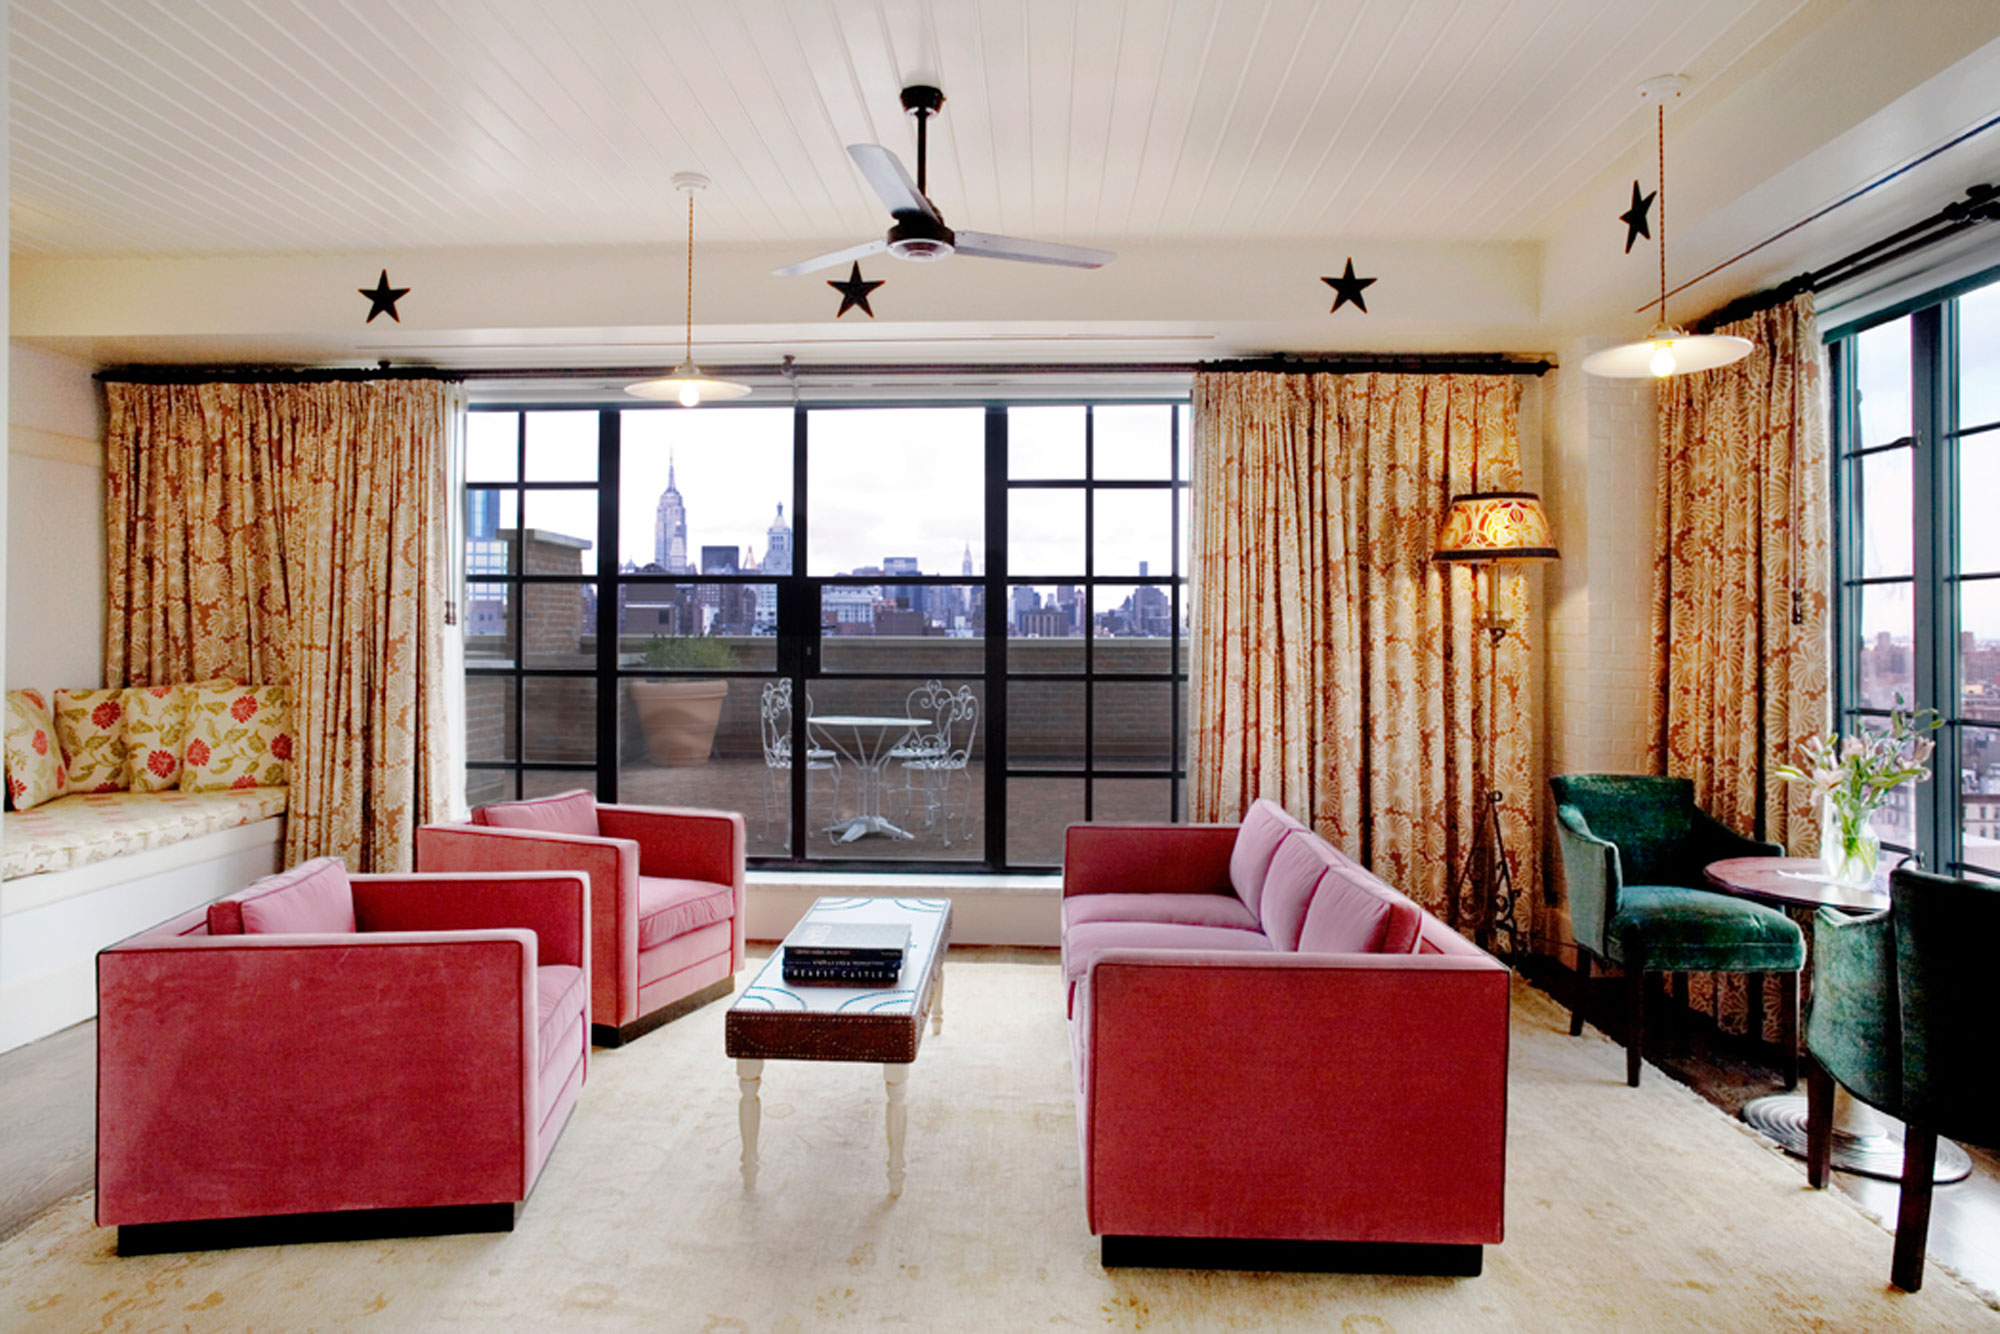 The bowery one of the best design hotels in noho new york for Top design hotels new york